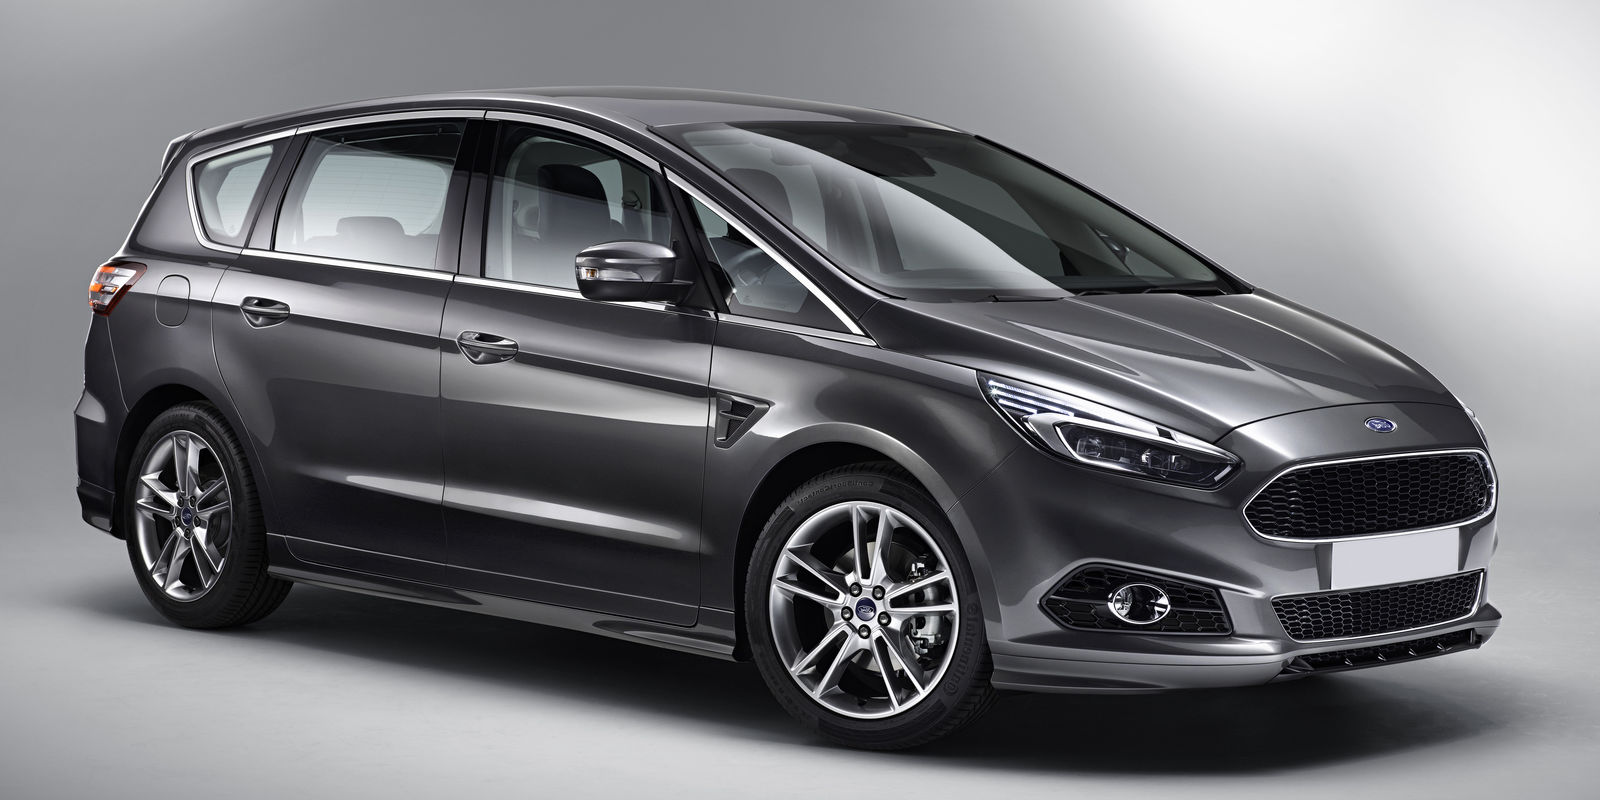 Ford s-max photo - 10